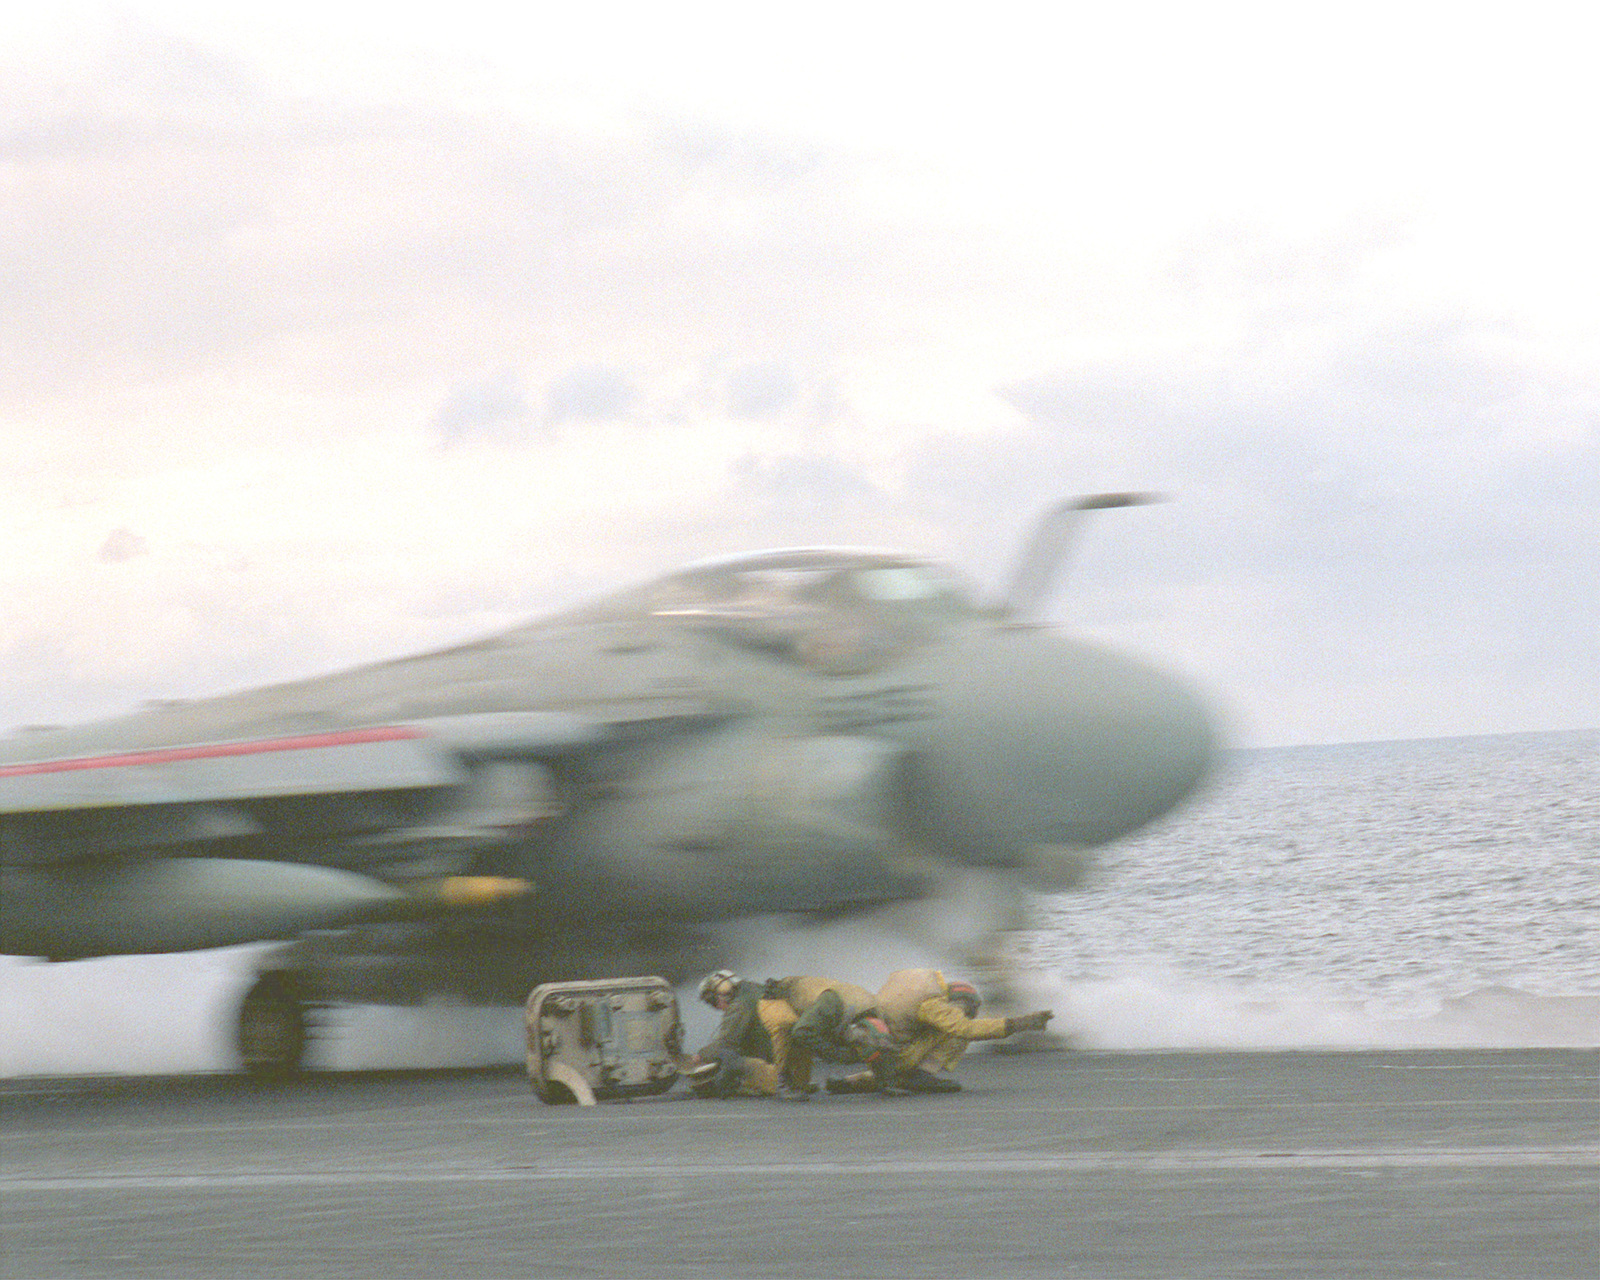 A catapult officer and his crew keep their heads down as an A-6E Intruder aircraft is launched from the flight deck of the aircraft carrier USS FORRESTAL (CV-59) during the allied forces exercise Team Work '88